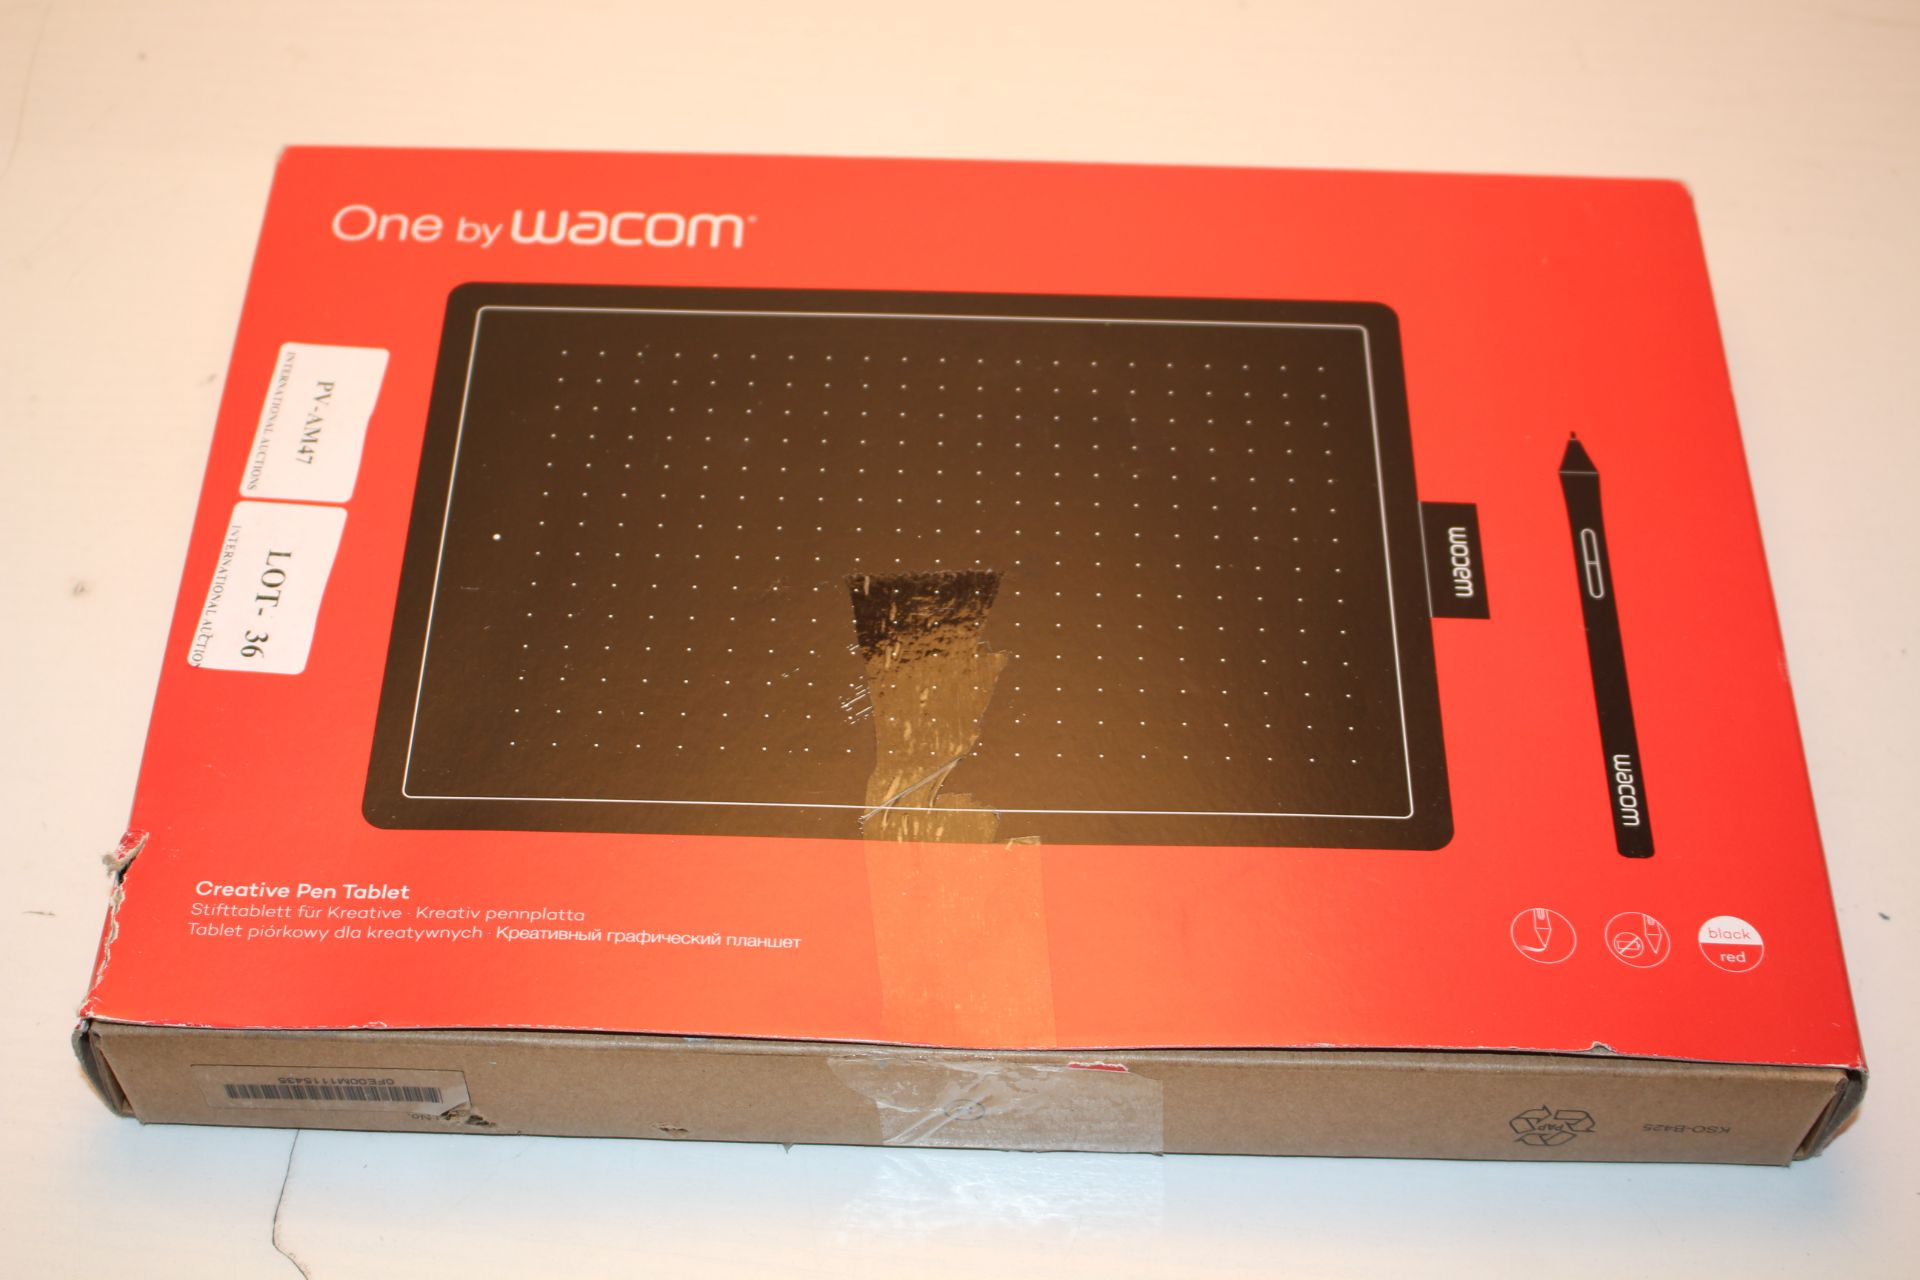 BOXED ONE BY WACOM CREATIVE PEN TABLET RRP £56.00Condition ReportAppraisal Available on Request- All